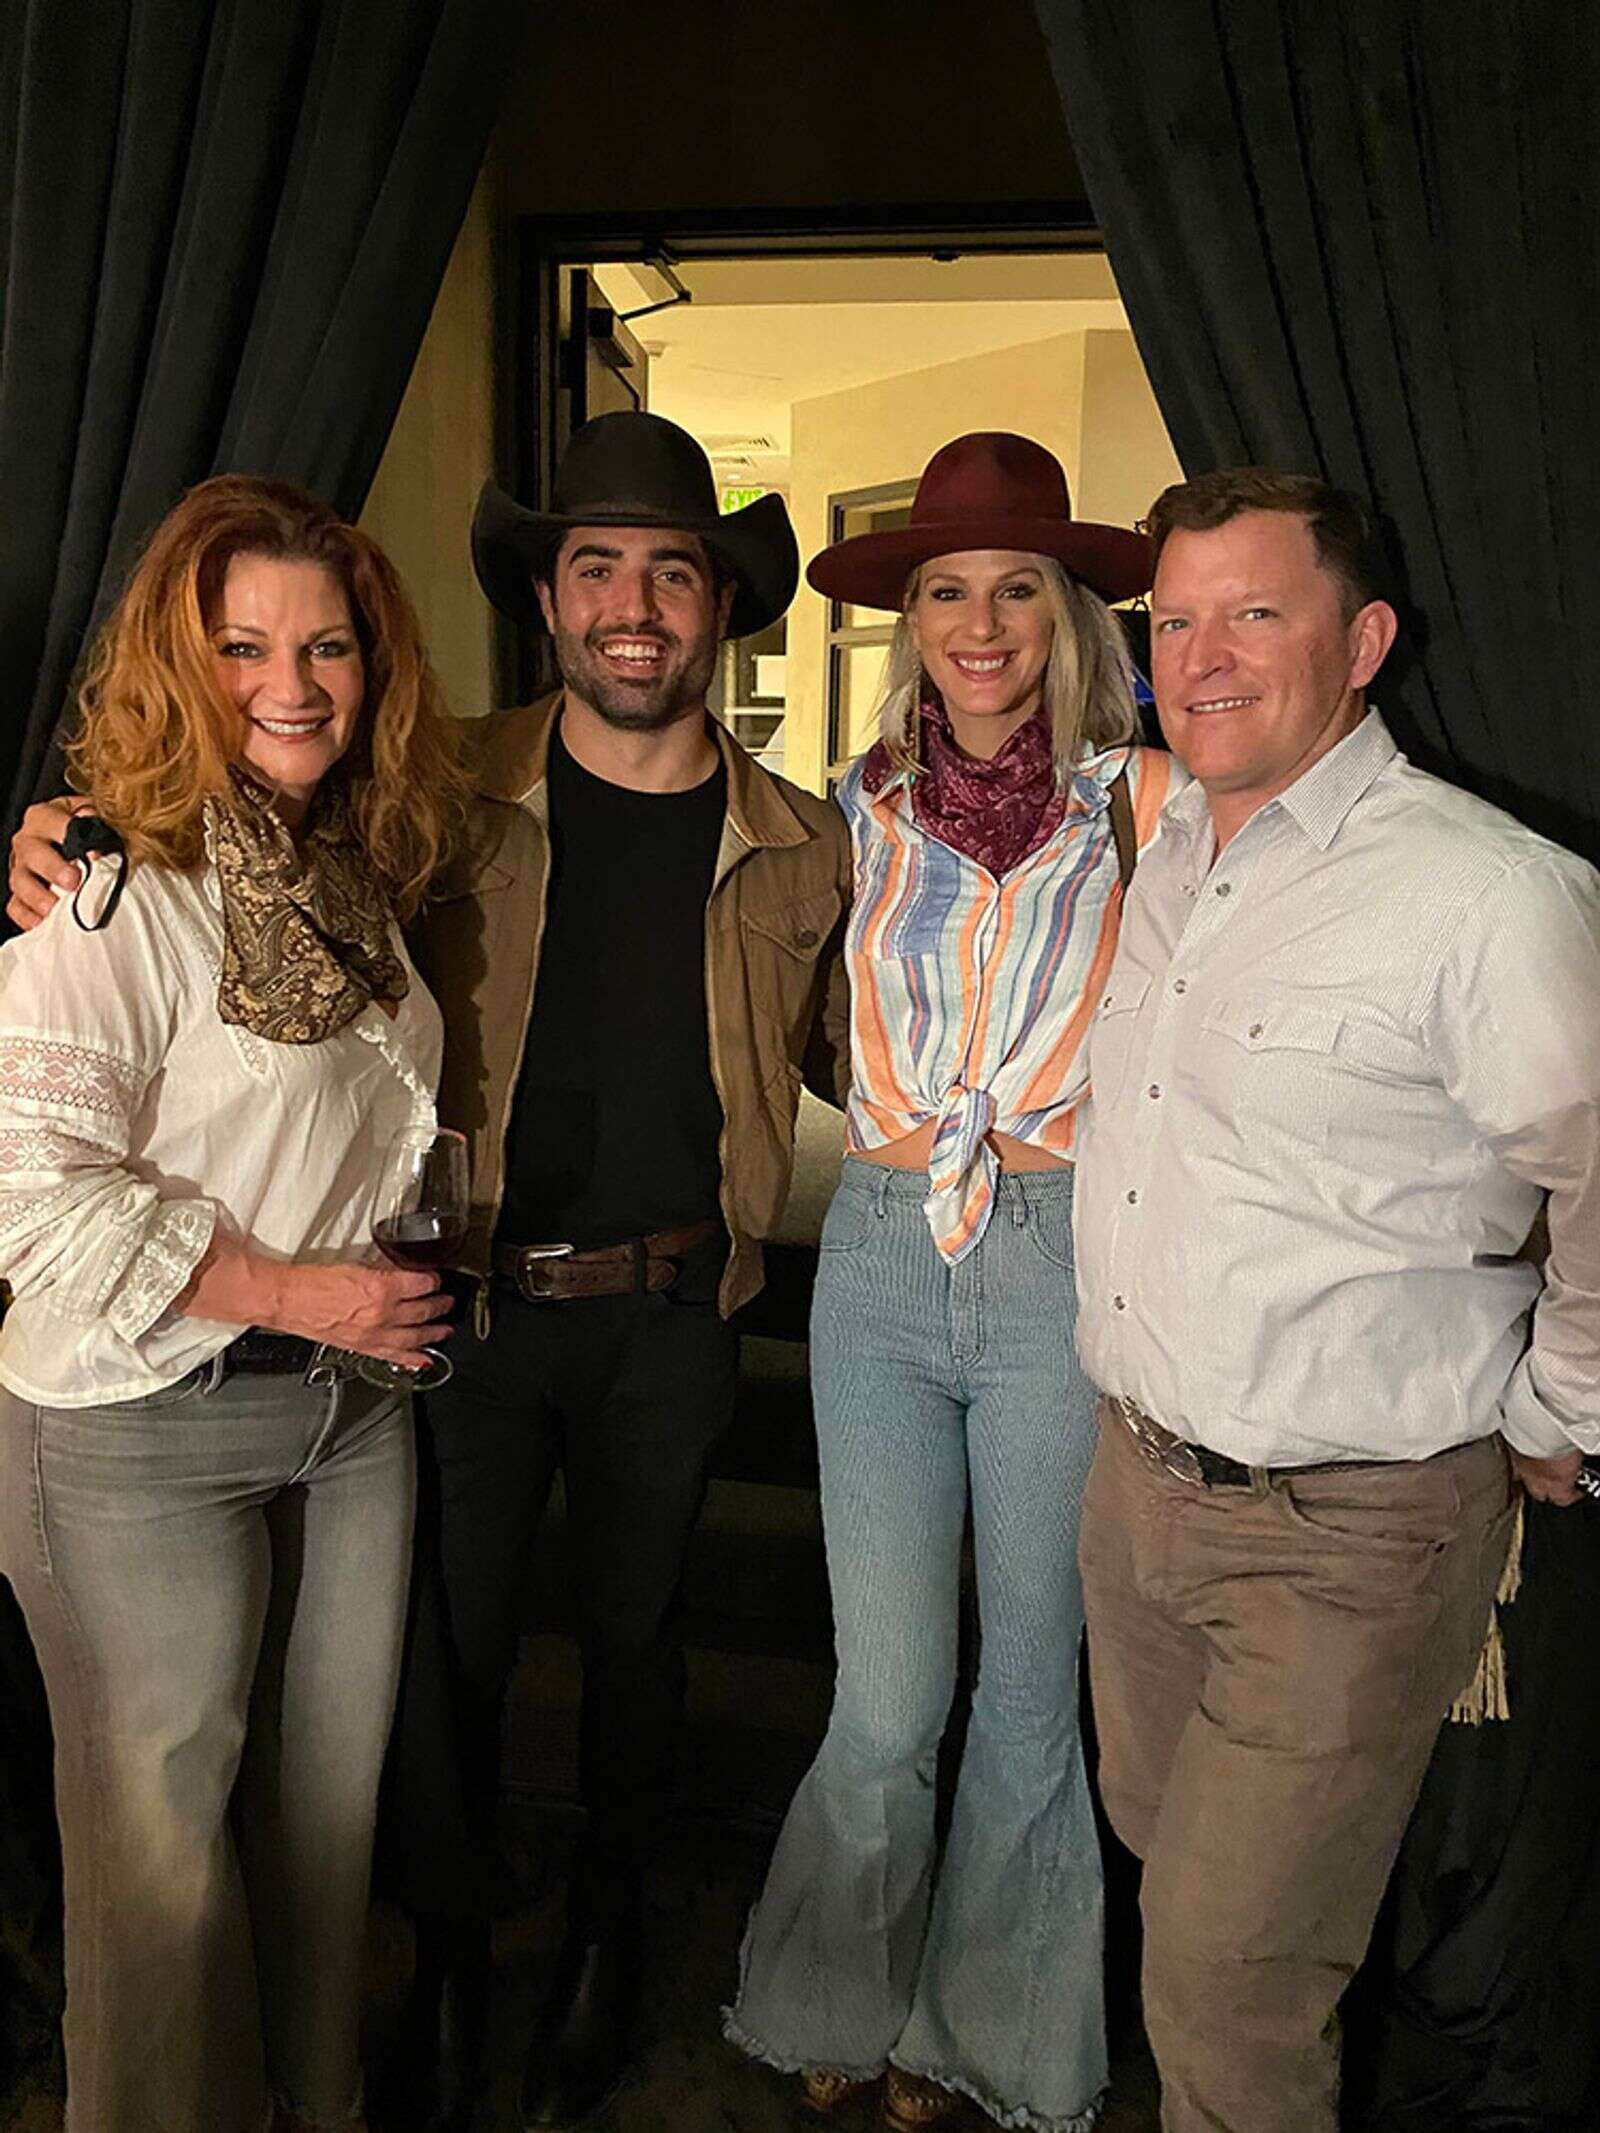 Marisa Wayne, Austin Moody, Jennifer Wayne and Bill Gorman at the new Wine Bar at The Nell.